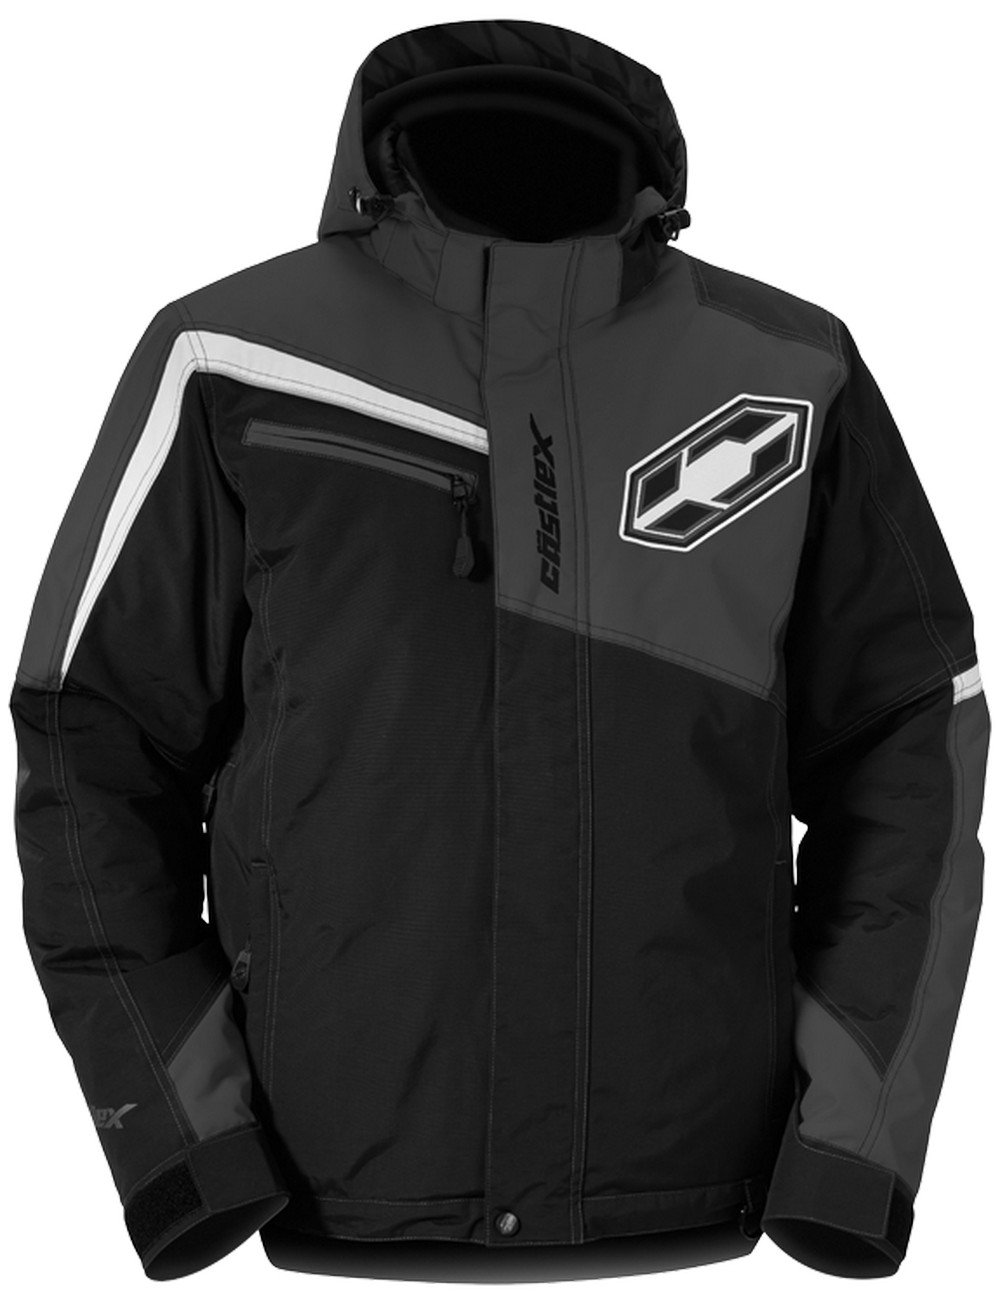 Castle X Phase Mens Snowmobile Jacket - Black - MED